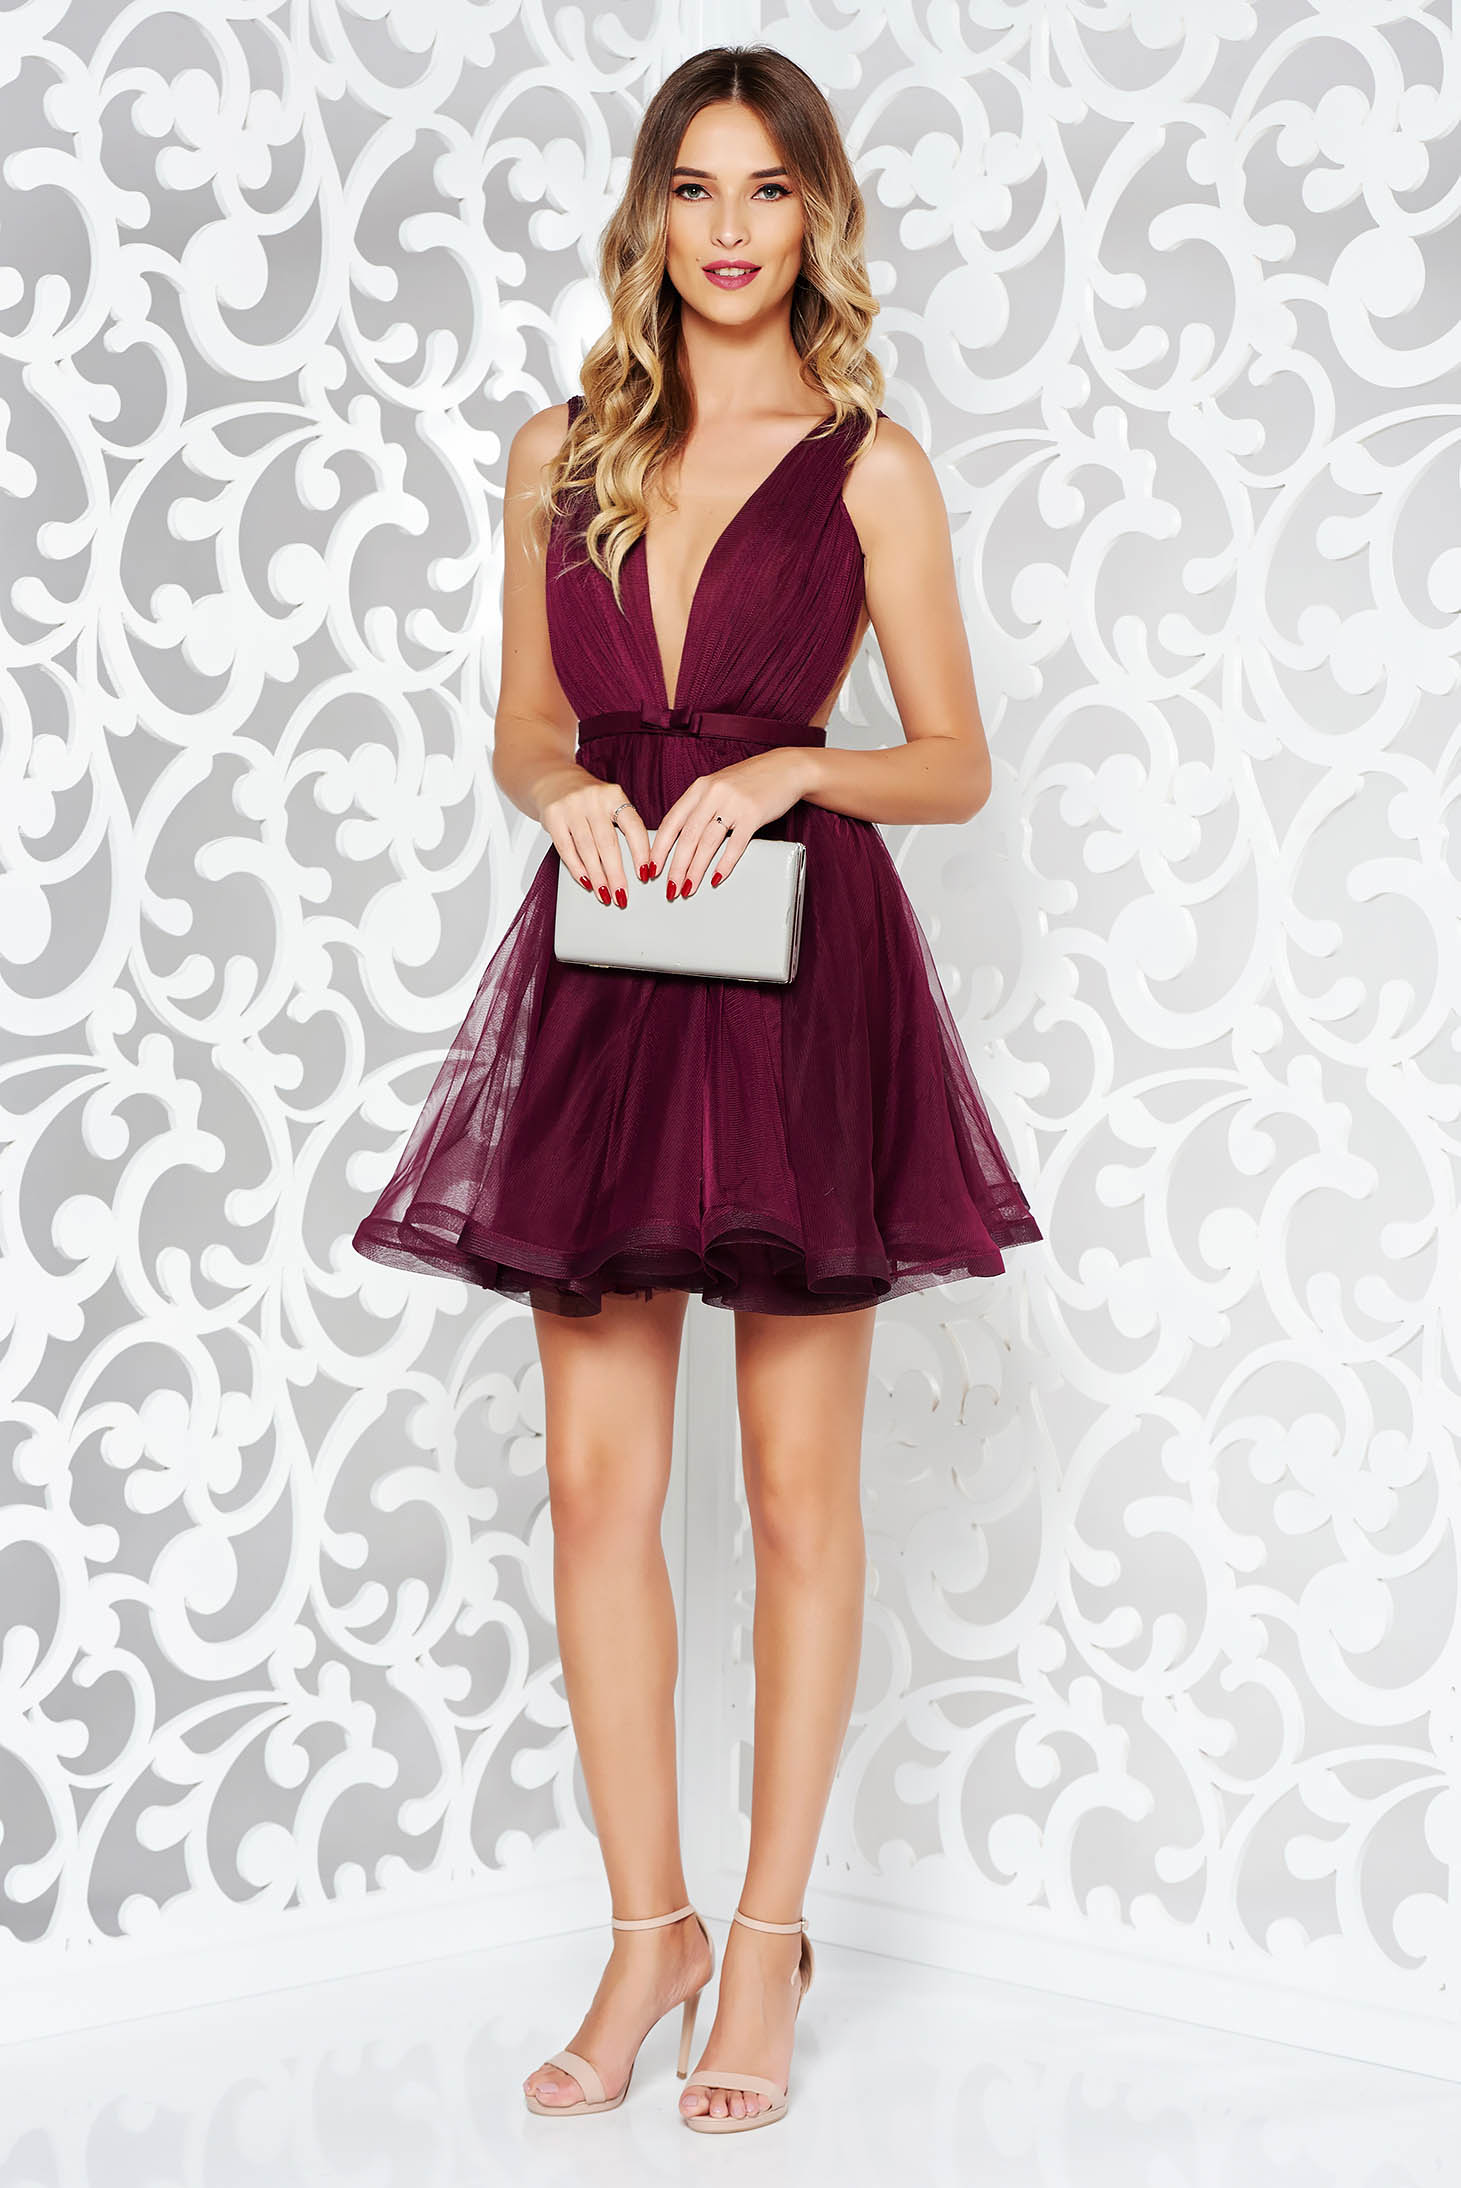 Ana Radu cloche purple luxurious dress with a cleavage from tulle with inside lining accessorized with tied waistband